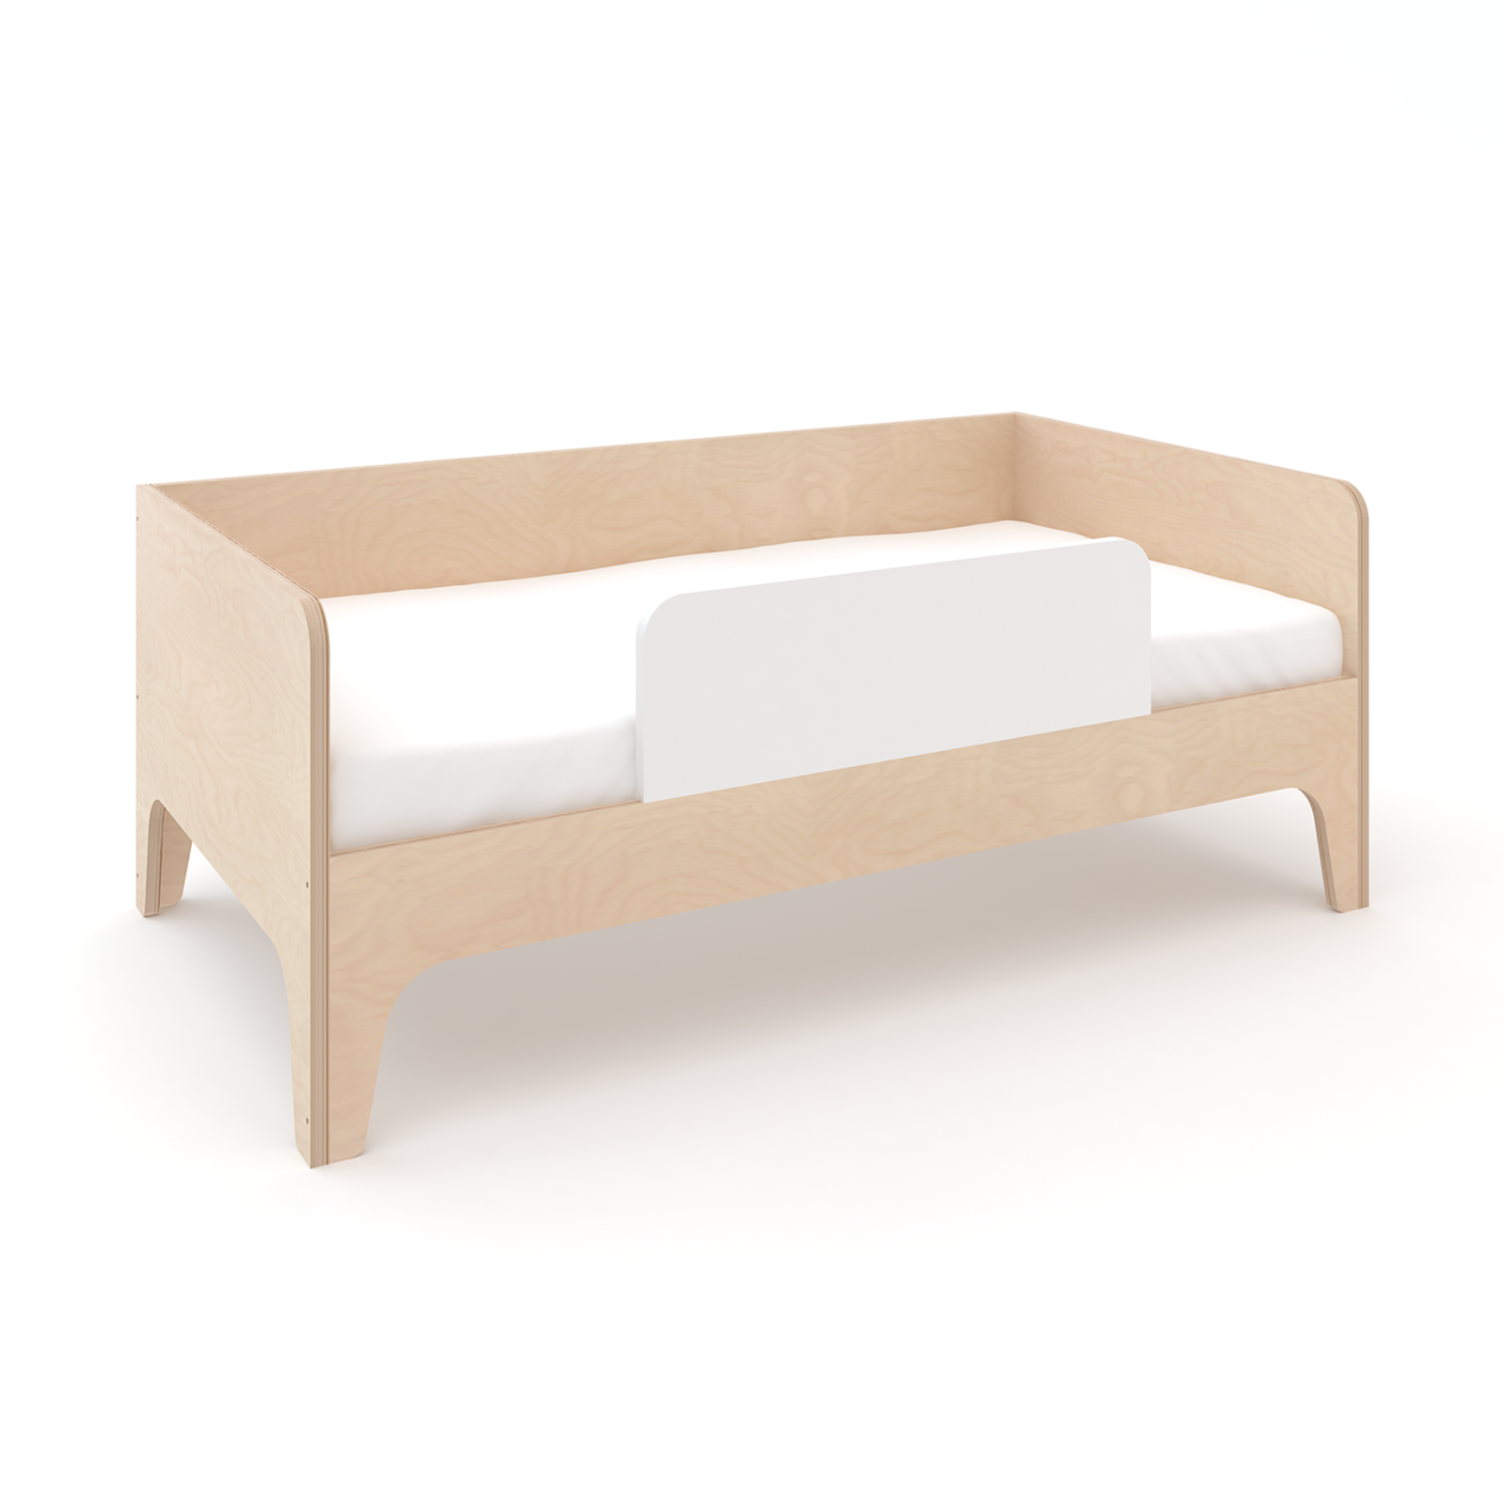 Oeuf Perch Toddler Bed Toddler bed, Mattress sales, Bed